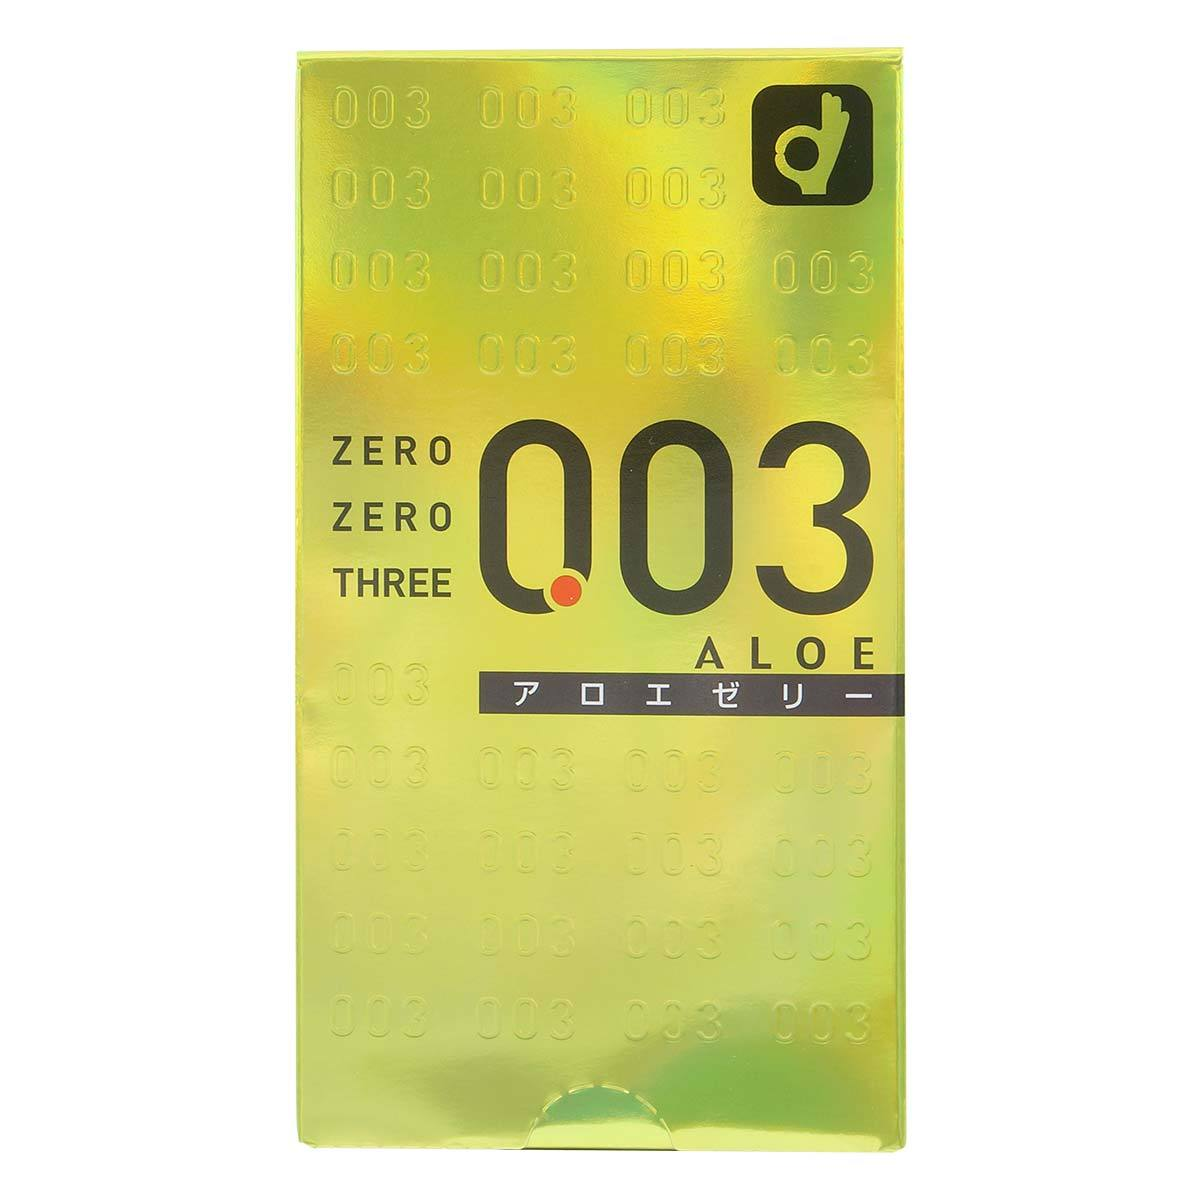 Okamoto Zero Zero Three 0.03 Aloe (Japan Edition) 10's Pack Latex Condom